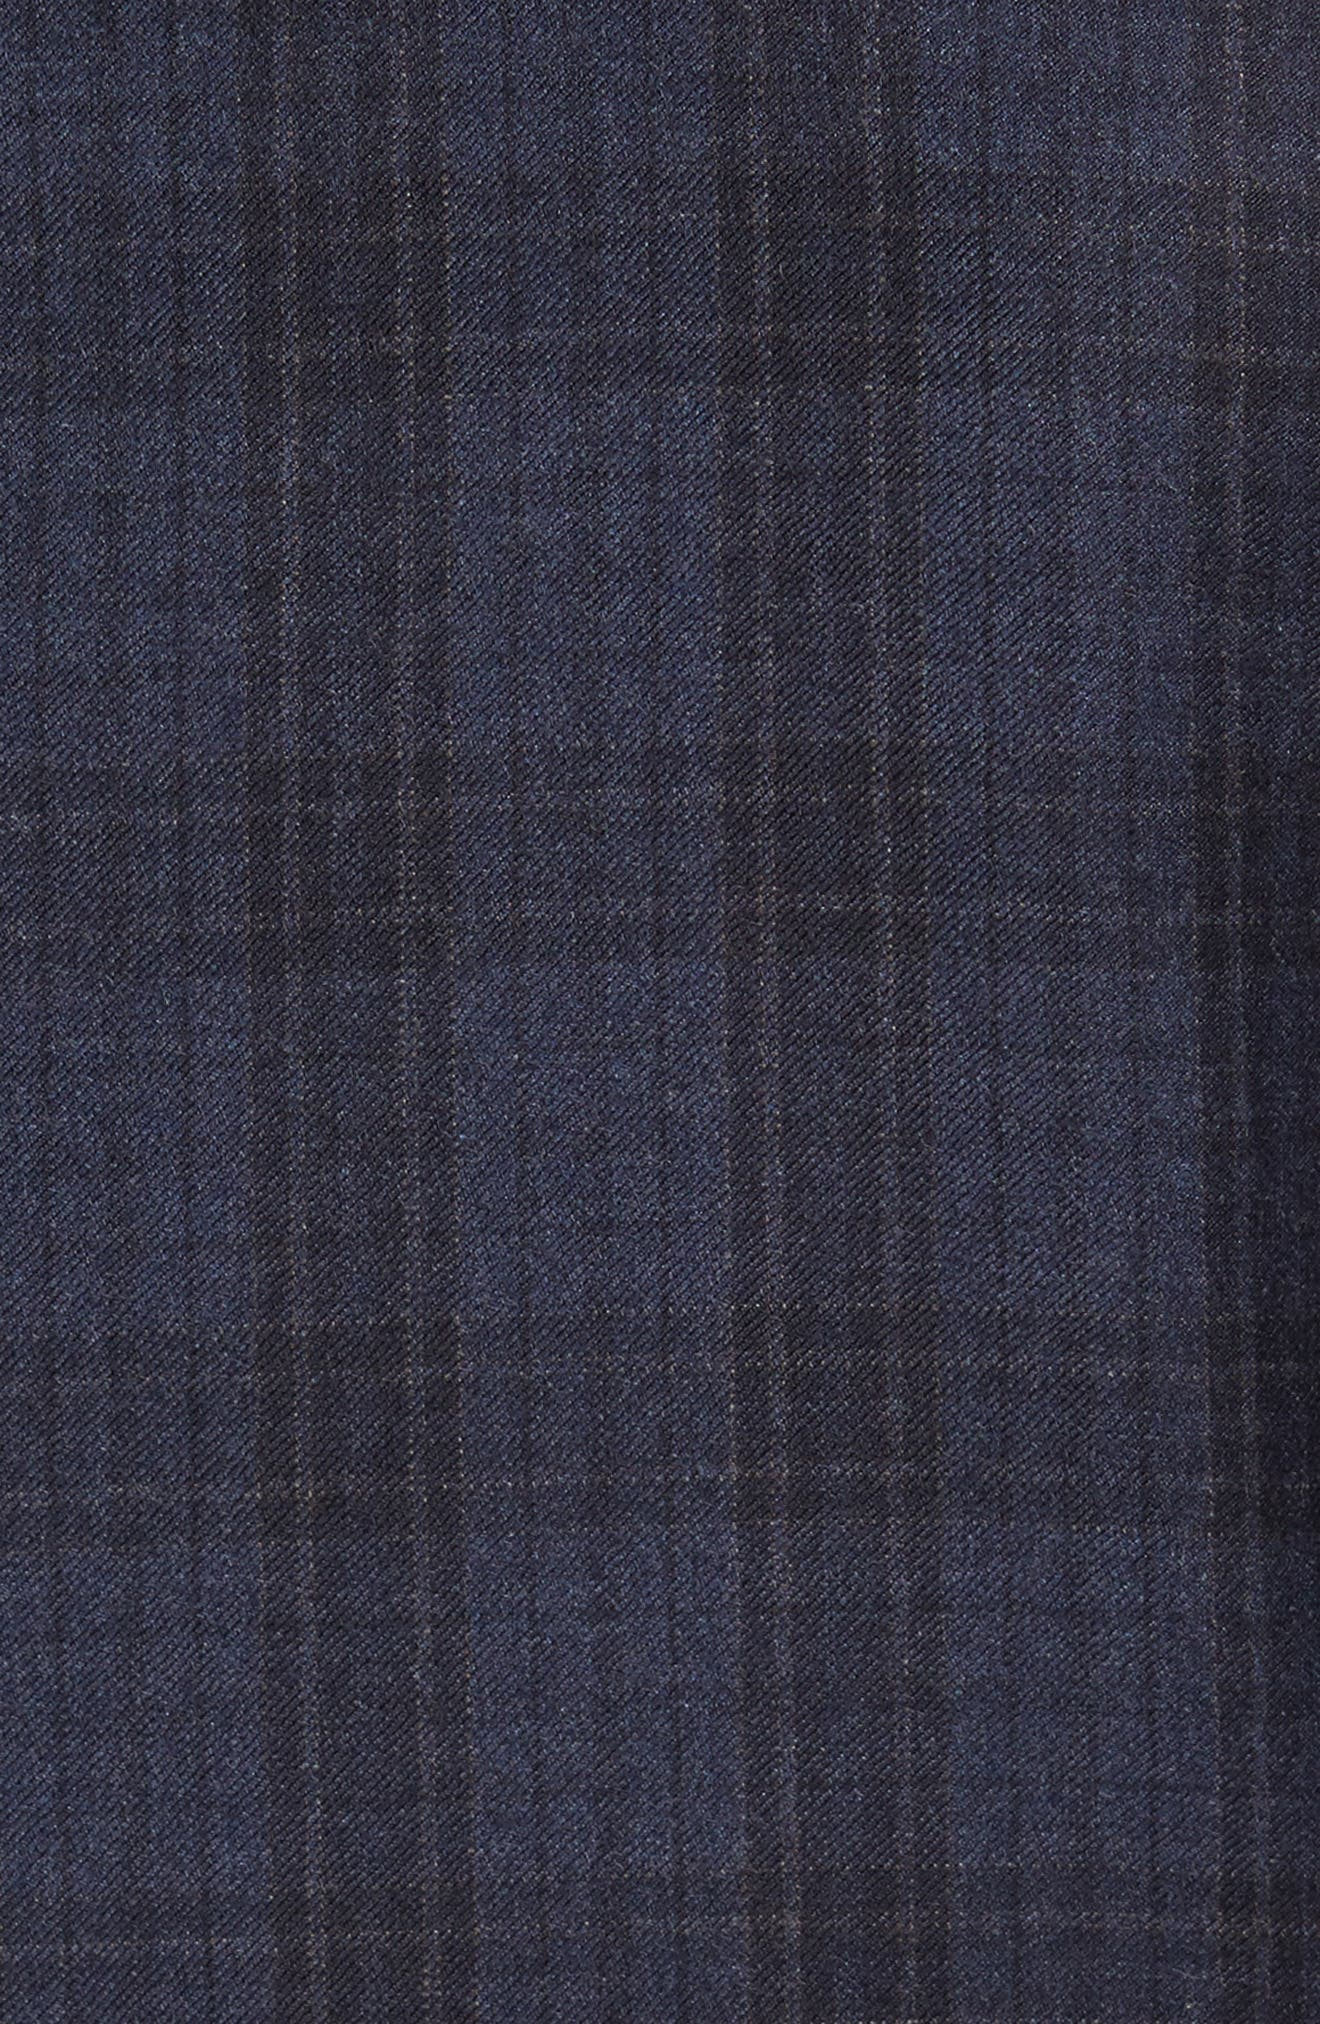 Trim Fit Plaid Wool Sport Coat,                             Alternate thumbnail 6, color,                             400